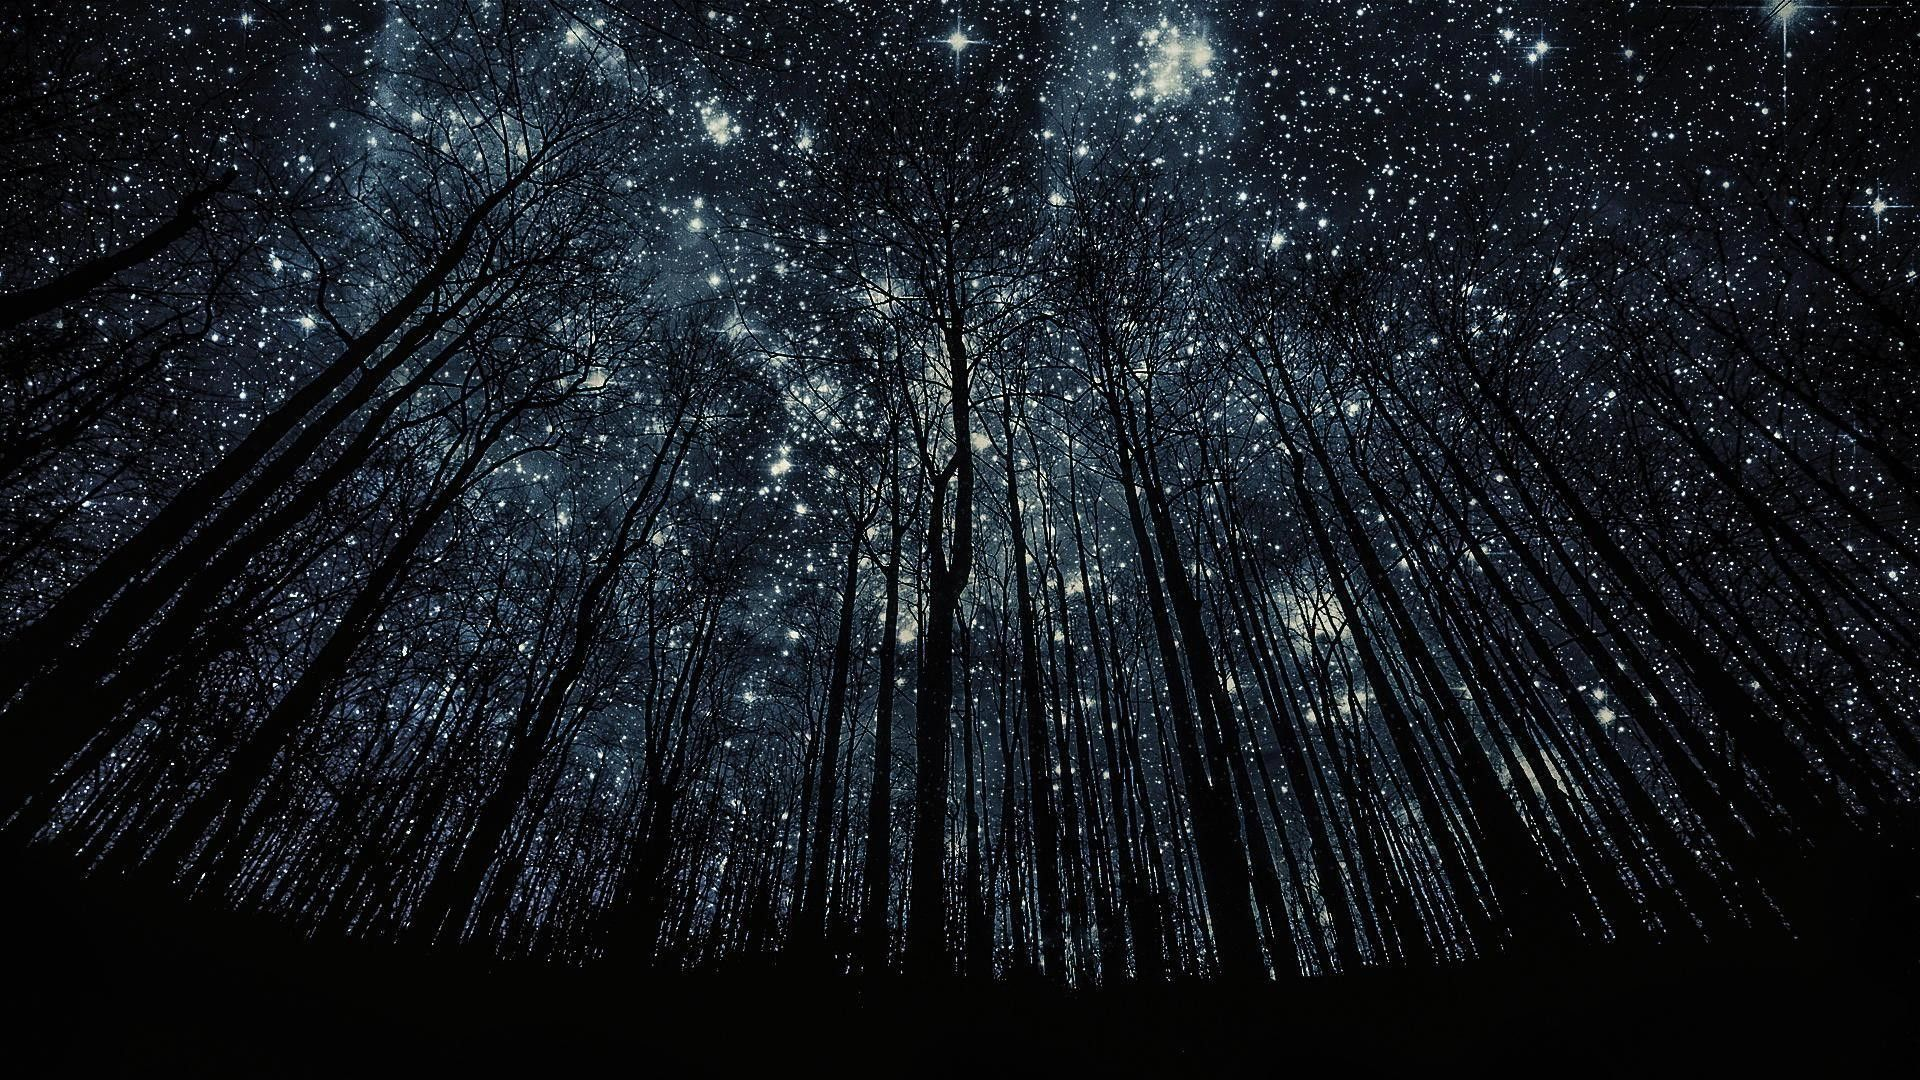 Hd Stars Wallpapers Top Free Hd Stars Backgrounds Wallpaperaccess